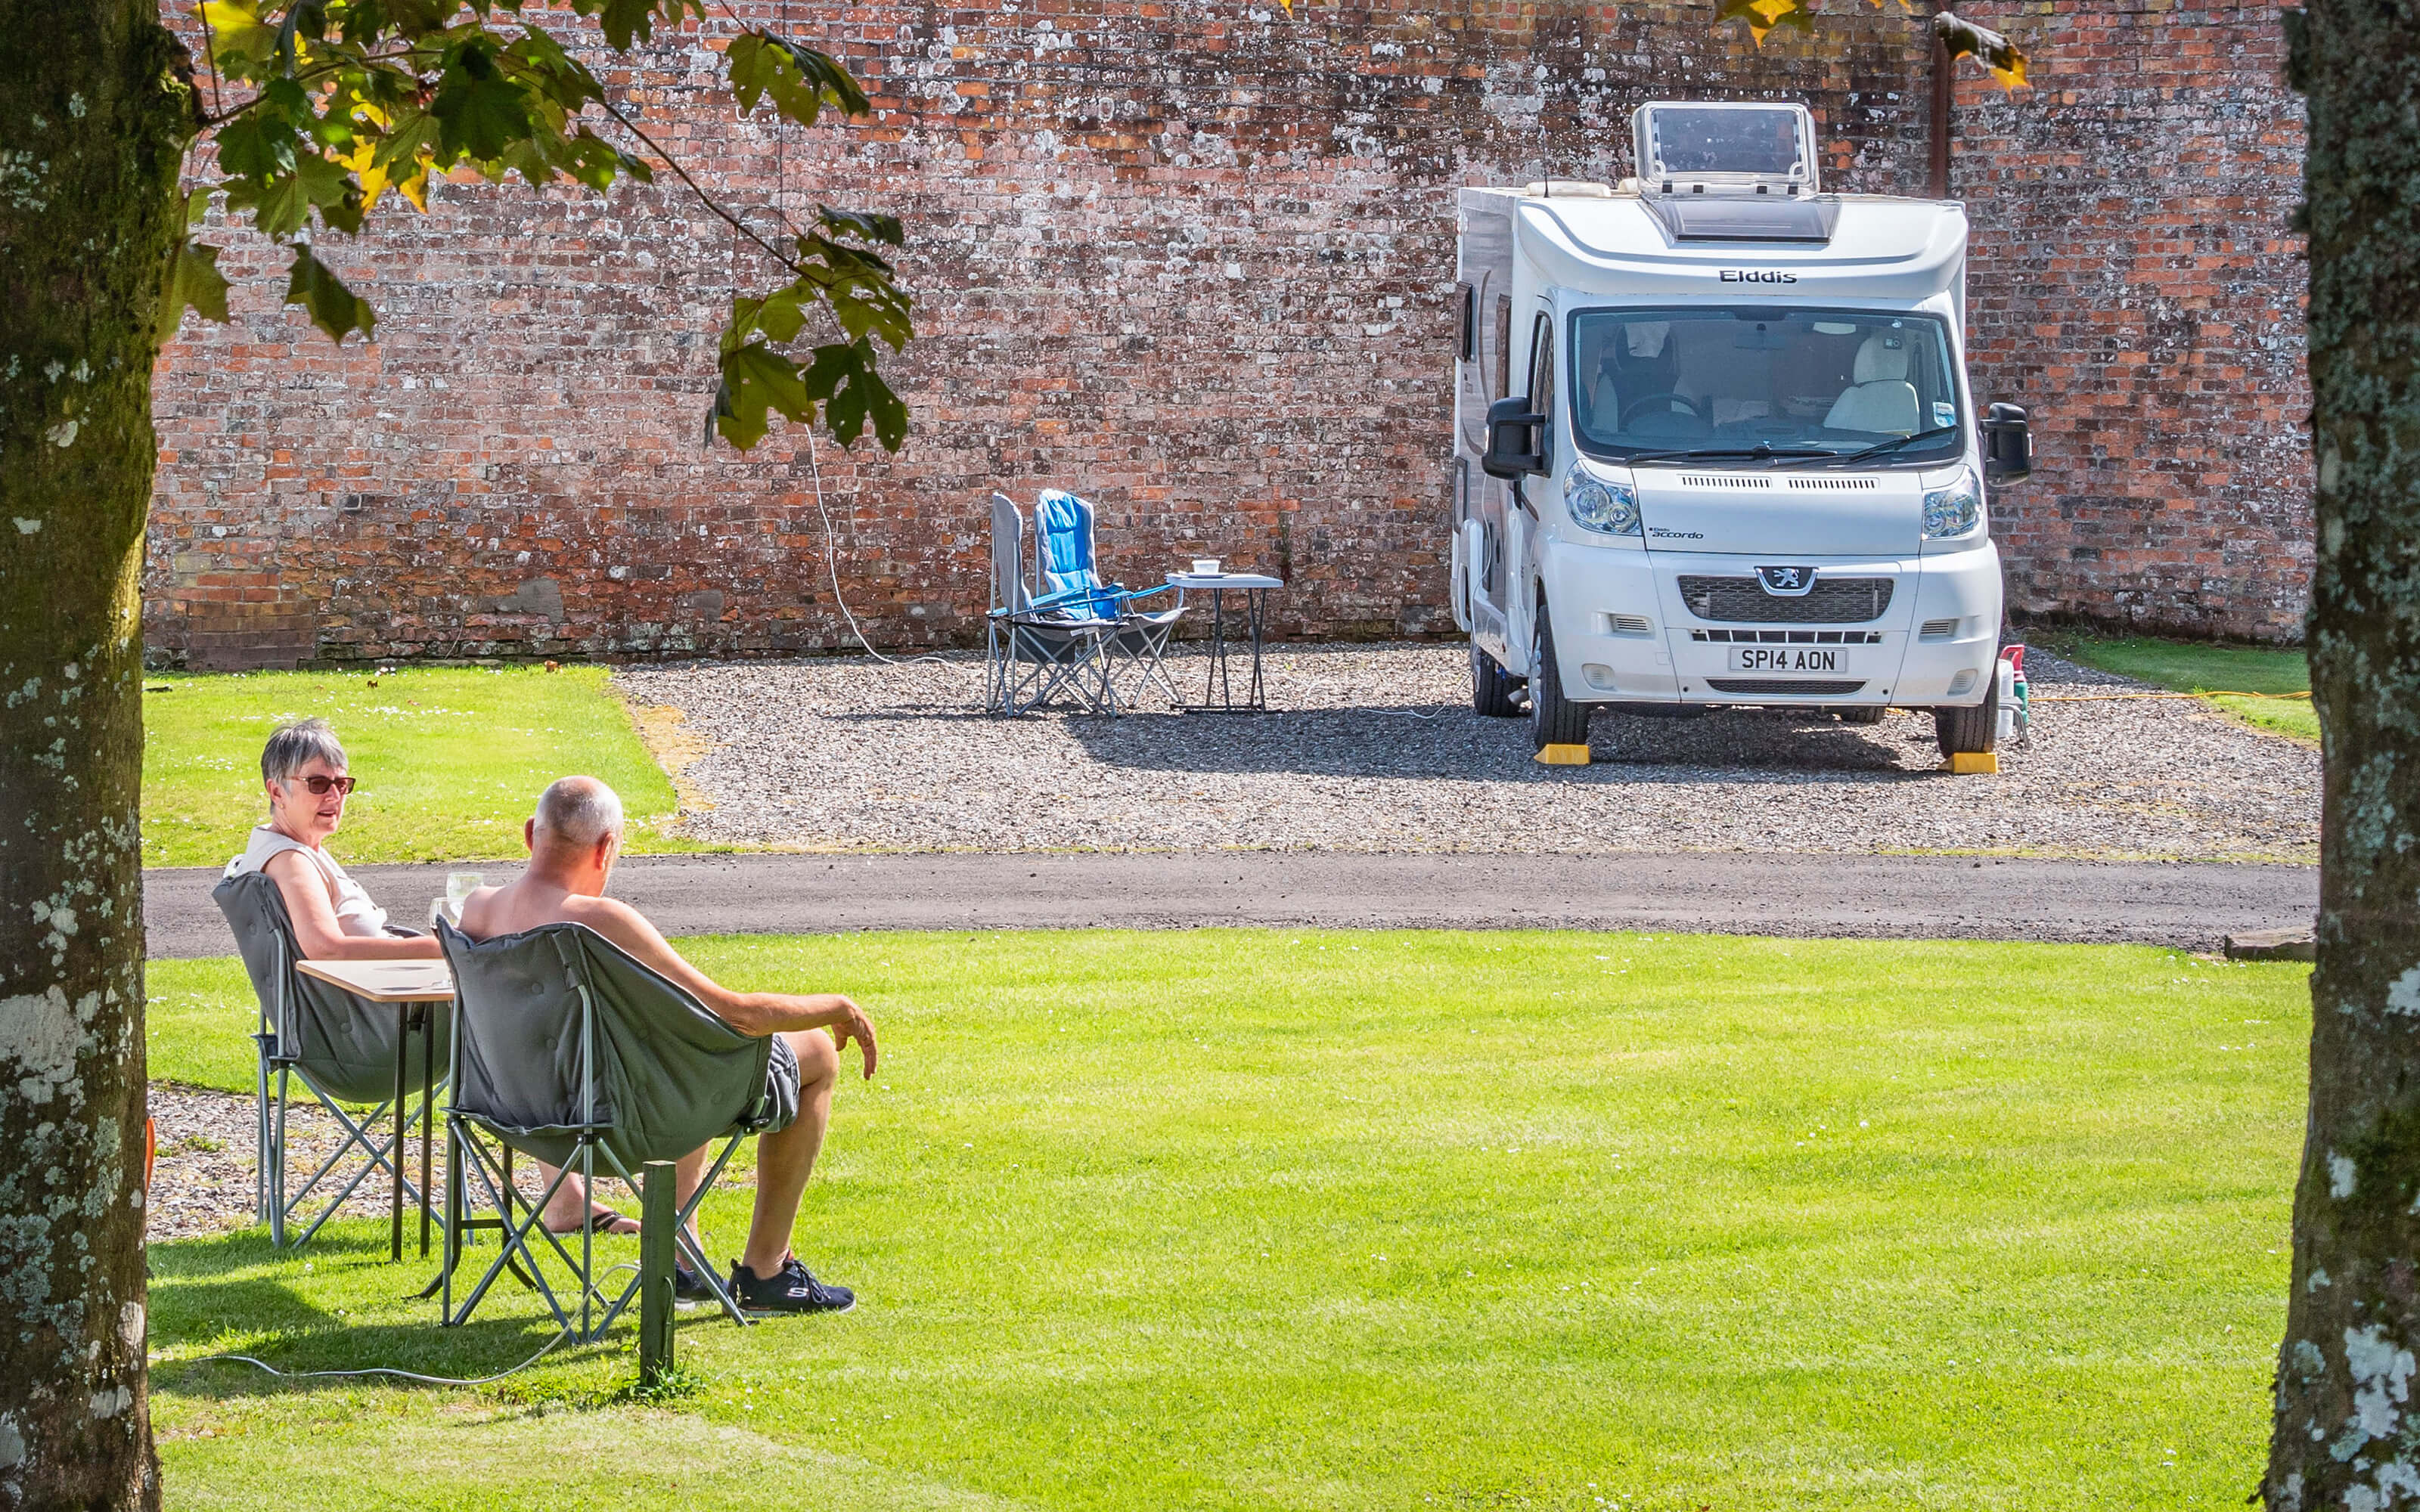 Guests sitting on garden chairs in the sun opposite their motorhome.